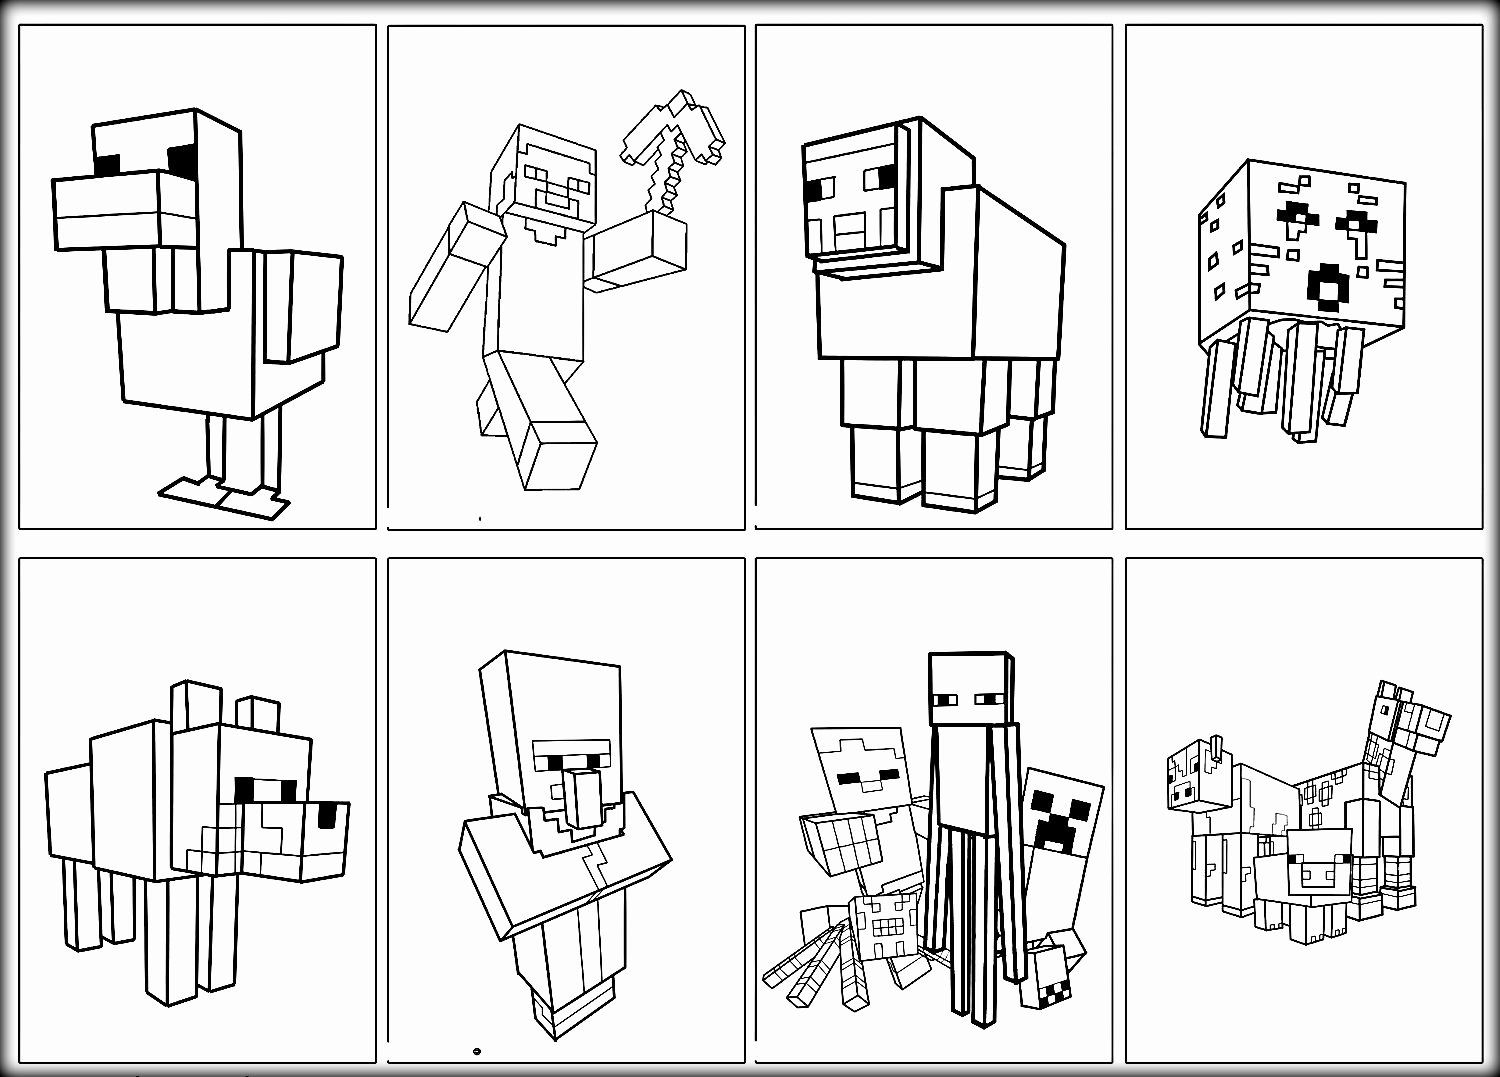 Best Simple Drawing Book Fresh Coloring Book Creeper Coloring Page Sea Pages Simple For In 2020 Minecraft Coloring Pages Coloring Pages Free Coloring Pages